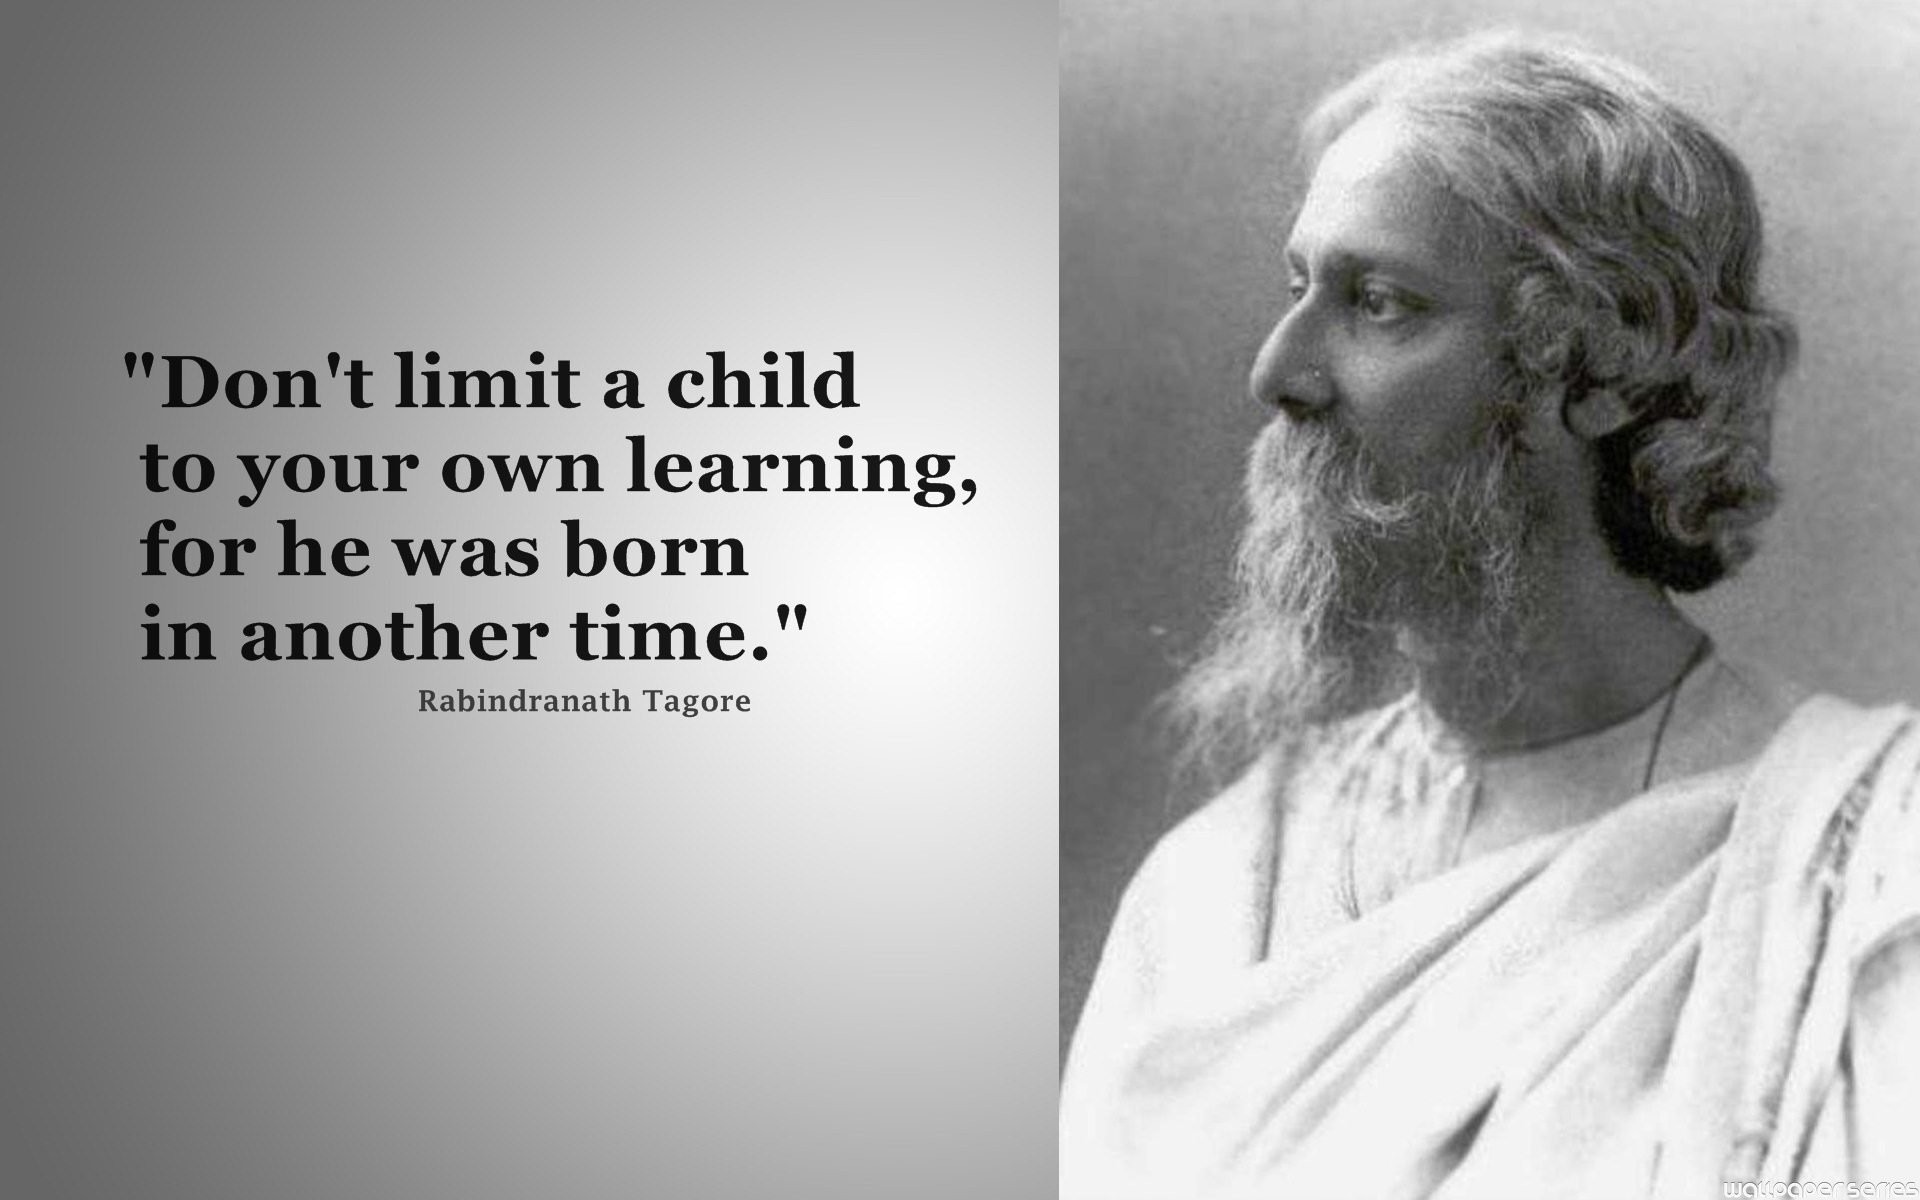 1920x1200 Rabindranath Tagore - Dont Limit A Child Quotes Wallpaper ,Images,Pictures,Photos,